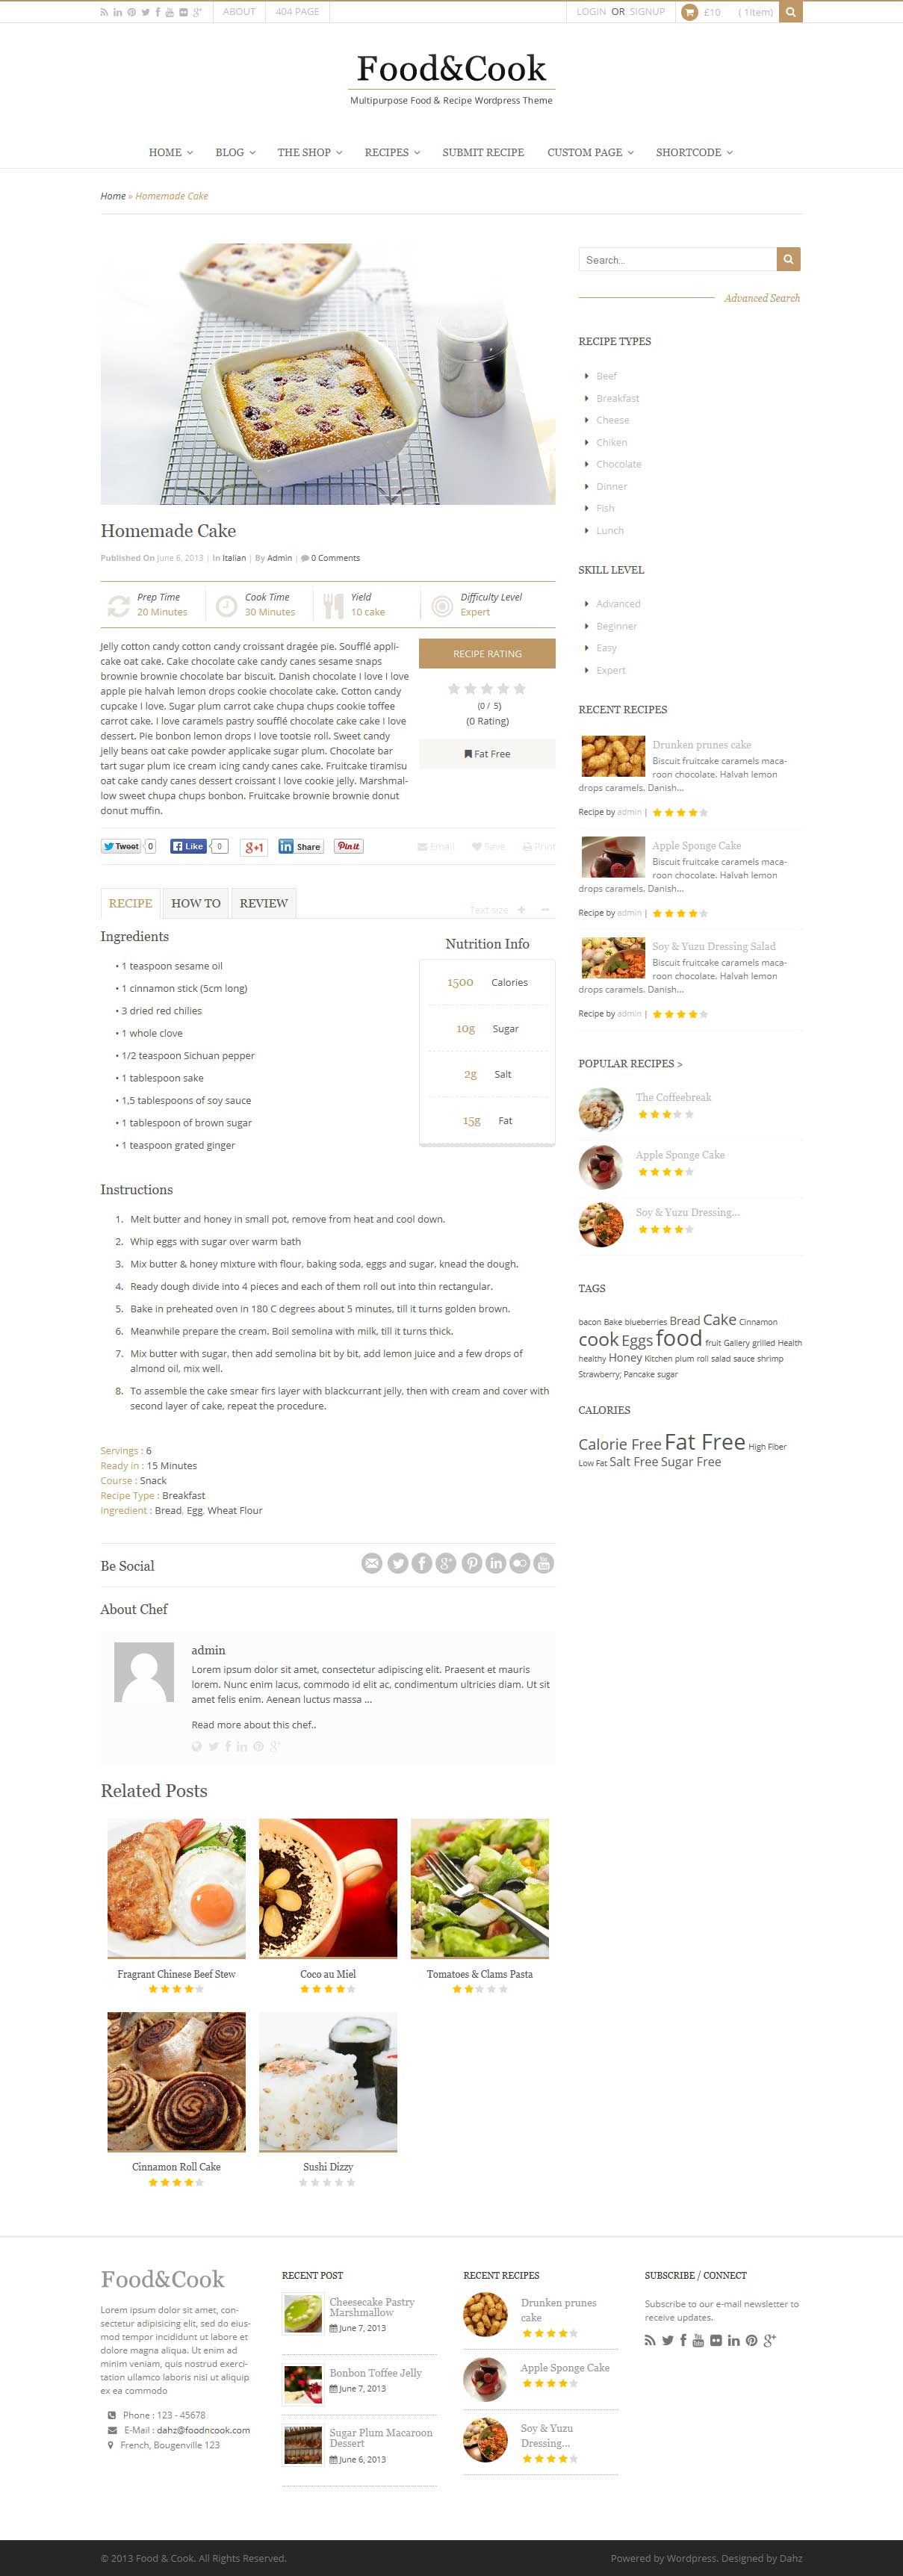 Food cook multipurpose food recipe wp theme by dahz themeforest food cook multipurpose food recipe wp theme forumfinder Gallery